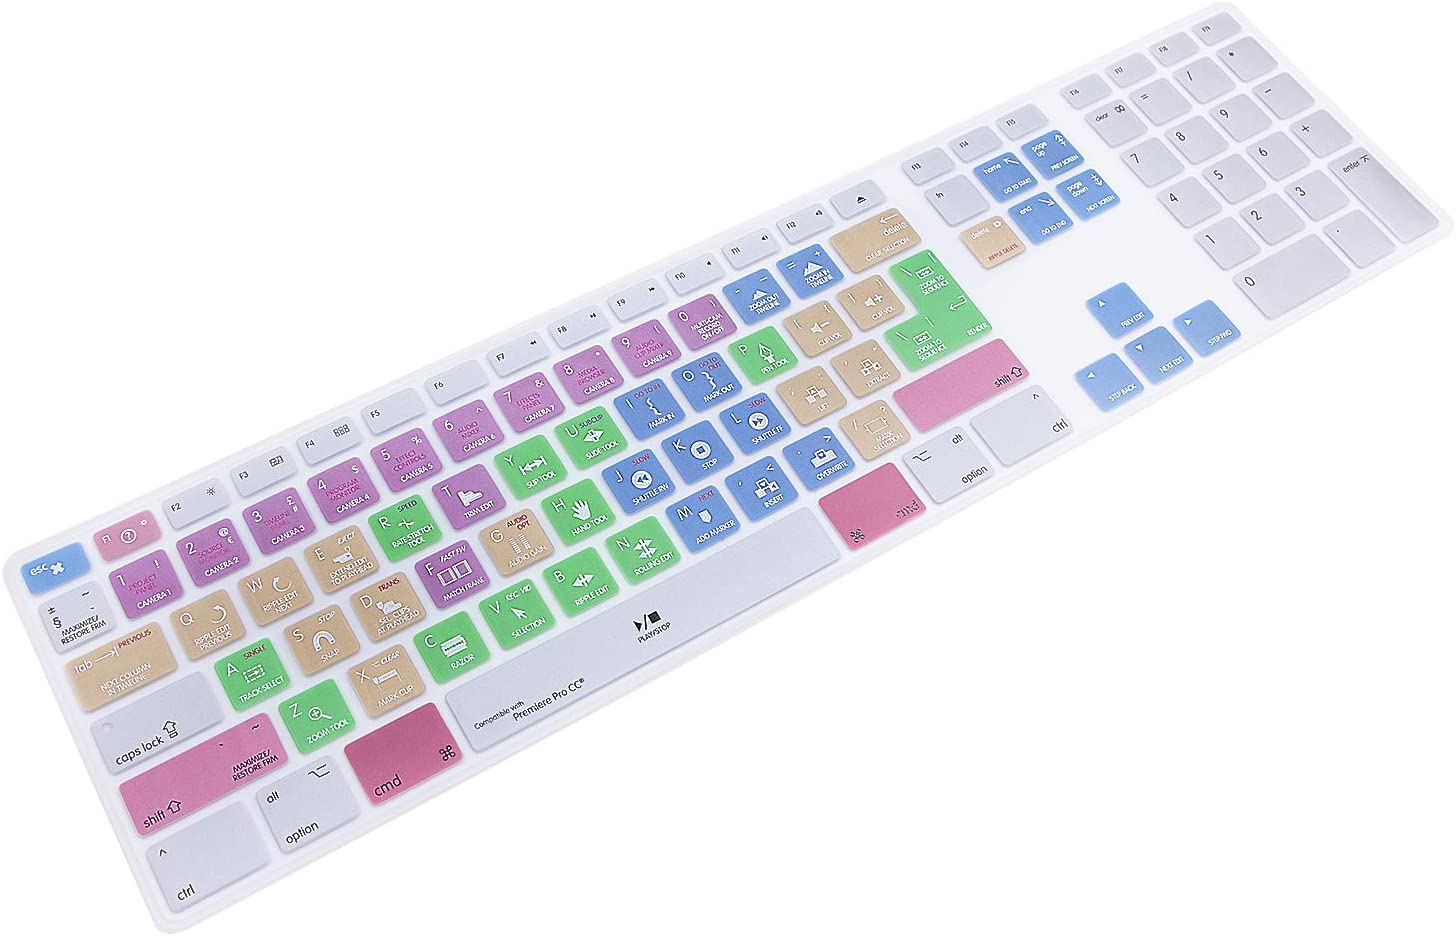 HRH for Apple iMac G6 MB110LL/B MB110LL/A A1243 Keyboard with Numeric Keypad NumberPad Print: Adobe Premiere Pro CC Functional Shortcuts Hot Keys Design Silicone Keyboard Skin Cover [US/EU Layout]